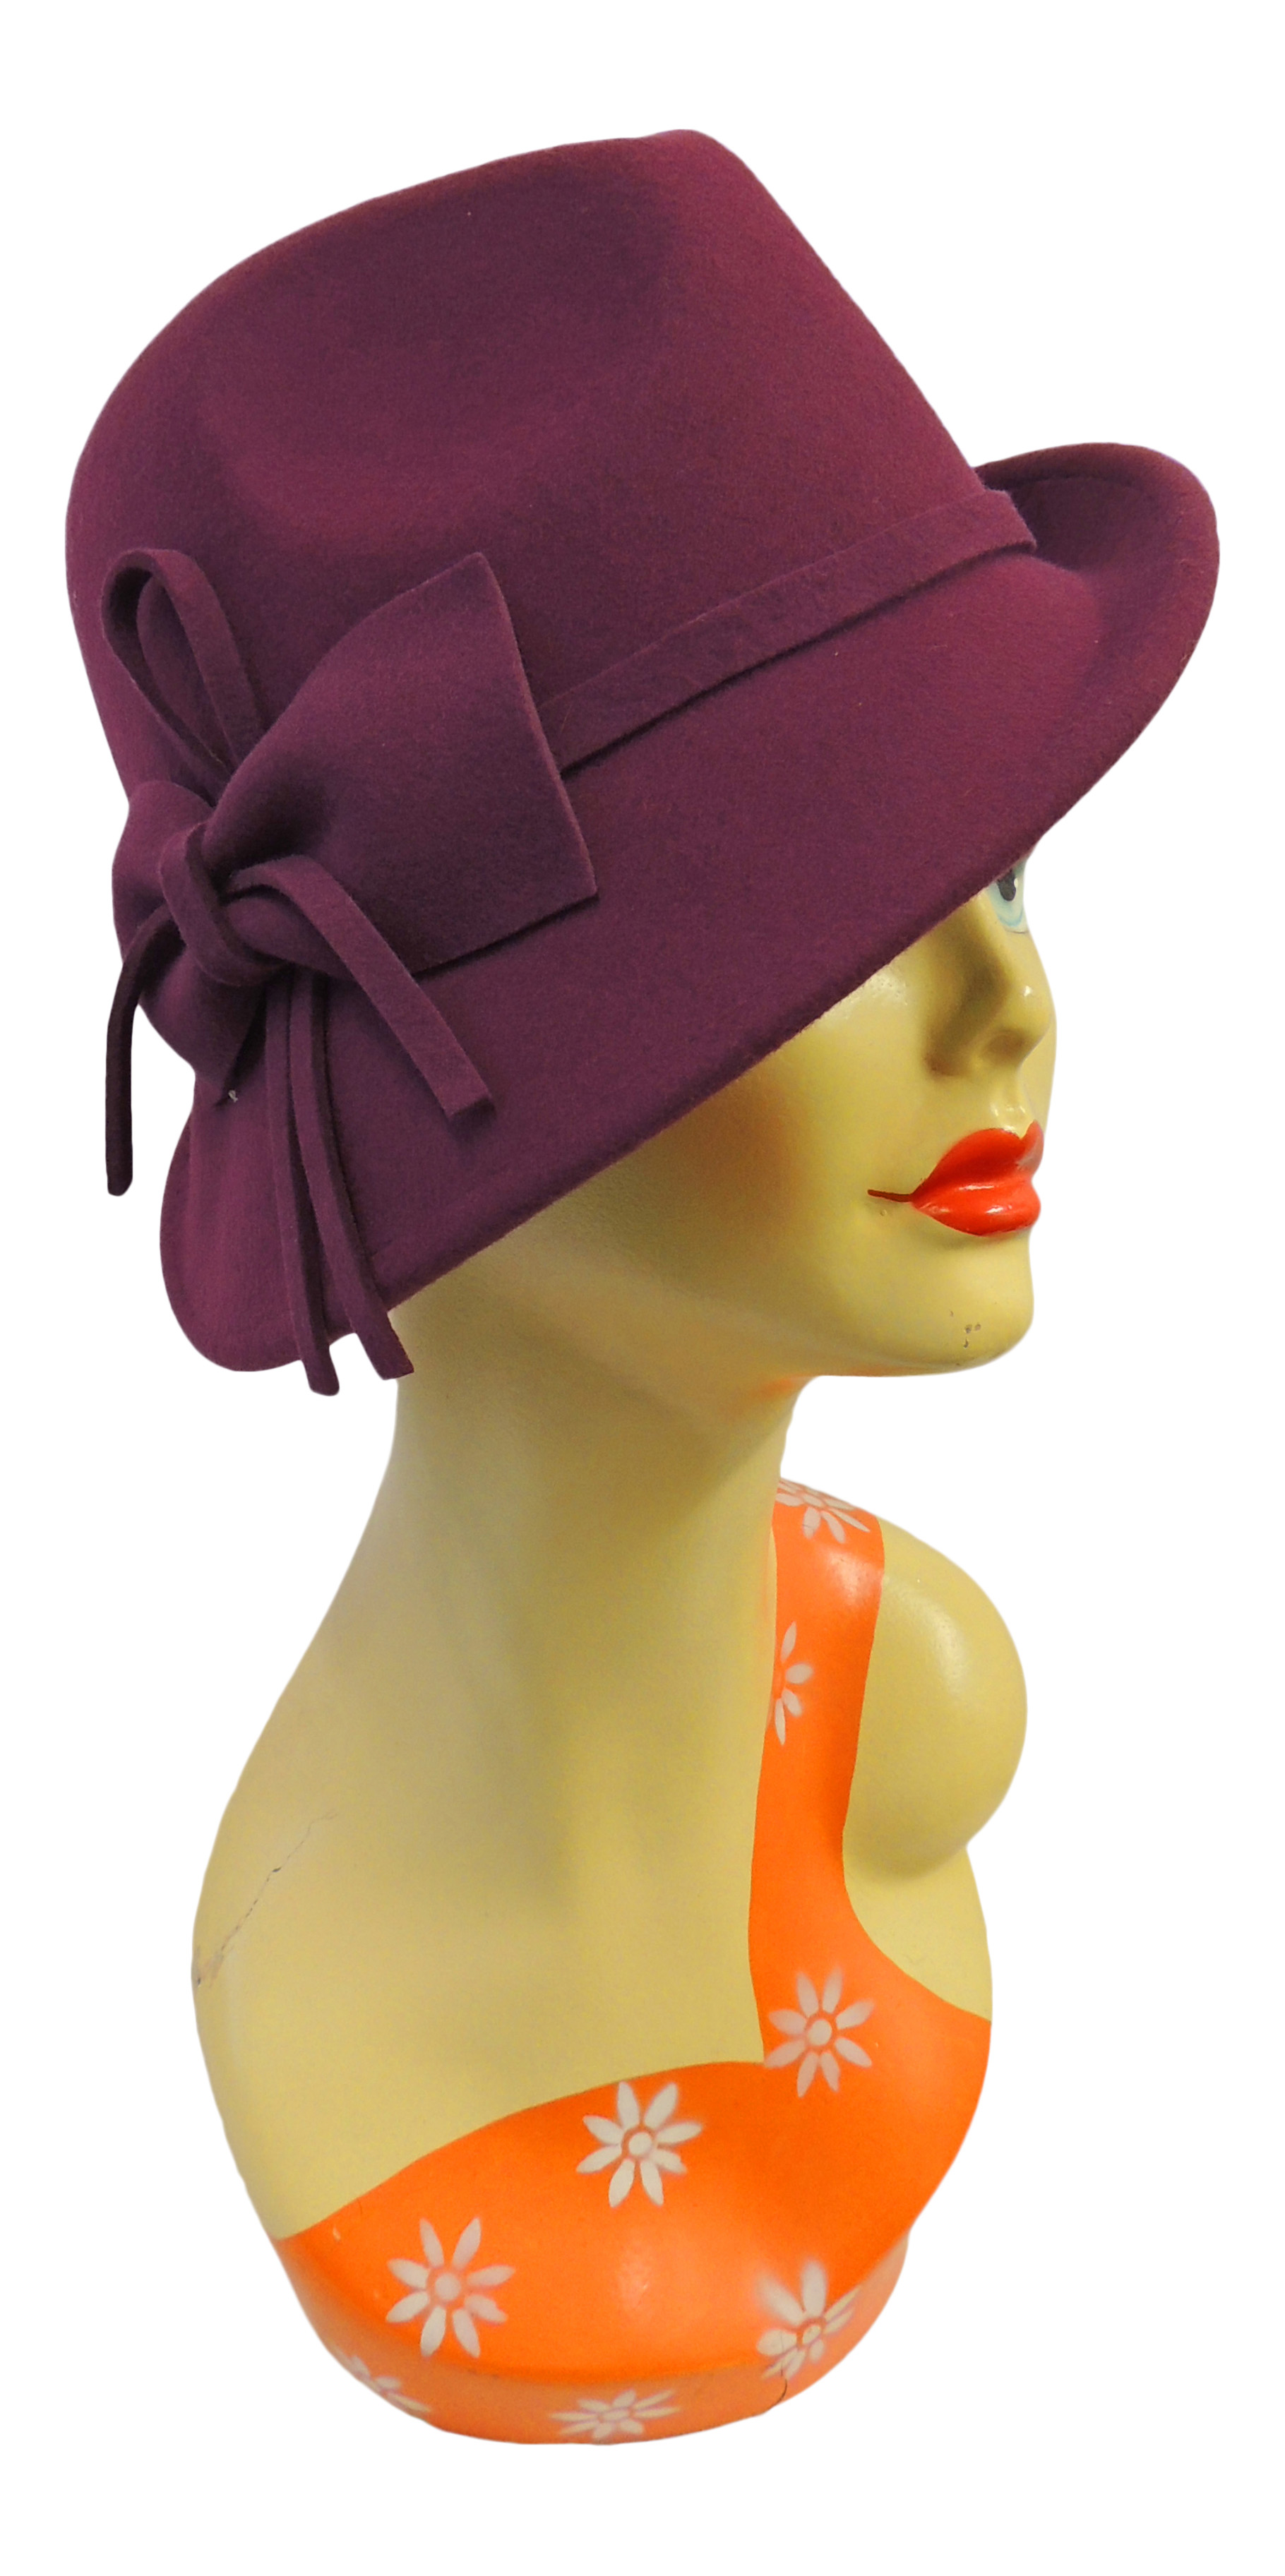 1930s Style Hats – New Vintage Inspired Designs   Retro Vintage 1920s 1930s 1940s style Felt Fedora Cloche Gatsby Trilby Hat $29.99 AT vintagedancer.com